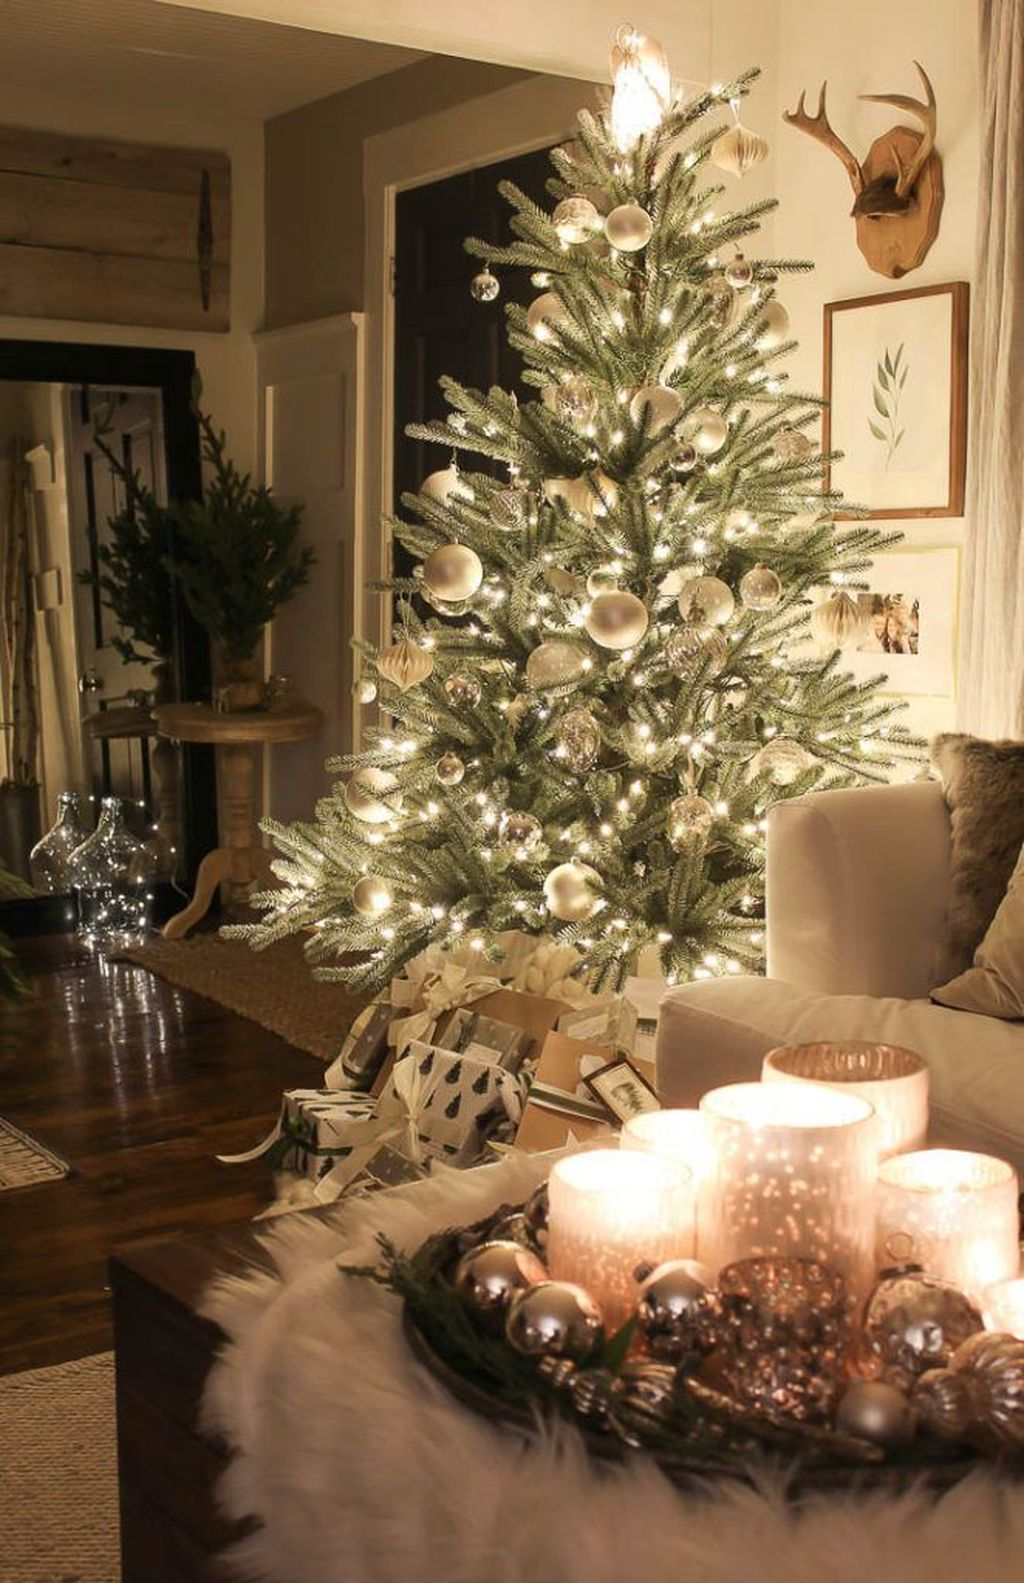 Amazing Christmas Lights Tree Decoration Ideas 34